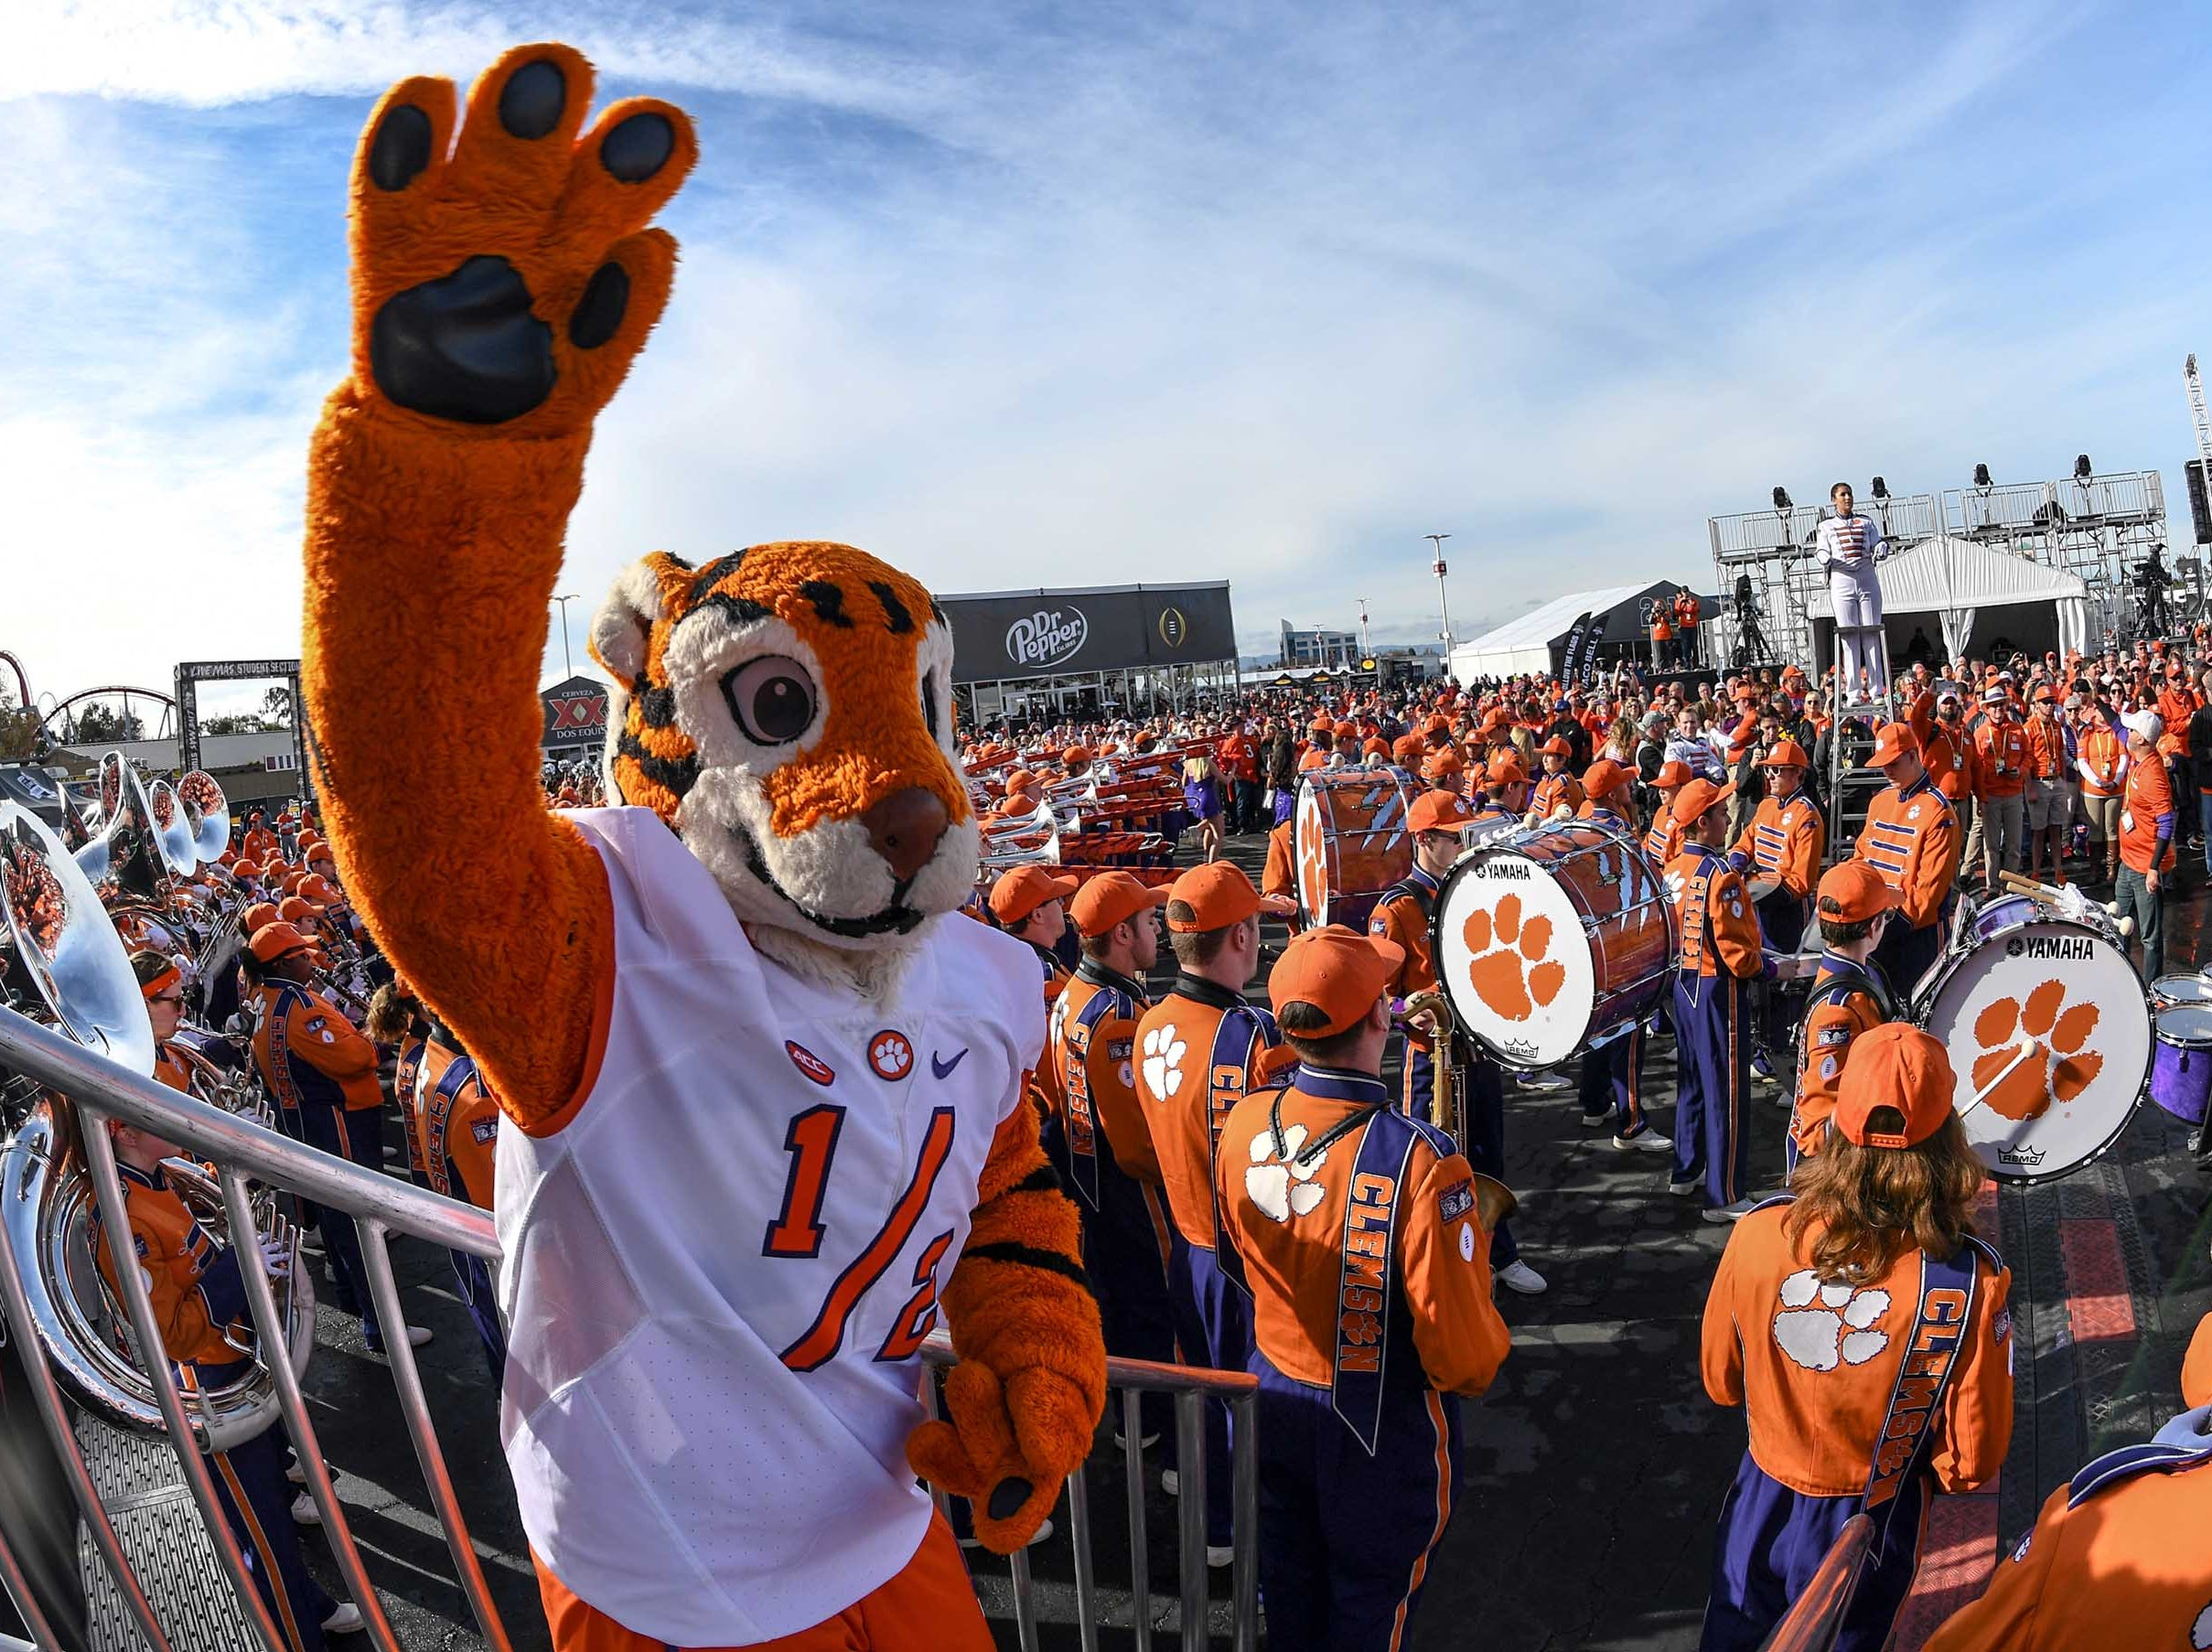 Clemson Tiger Cub waves standing with the Tiger Band, cheerleaders, Tiger Dancers, twirlers, and Rally Cats participate with fans at the College Football Championship Playoff Tailgate outside Levi's Stadium in Santa Clara, California Monday, January 7, 2019.